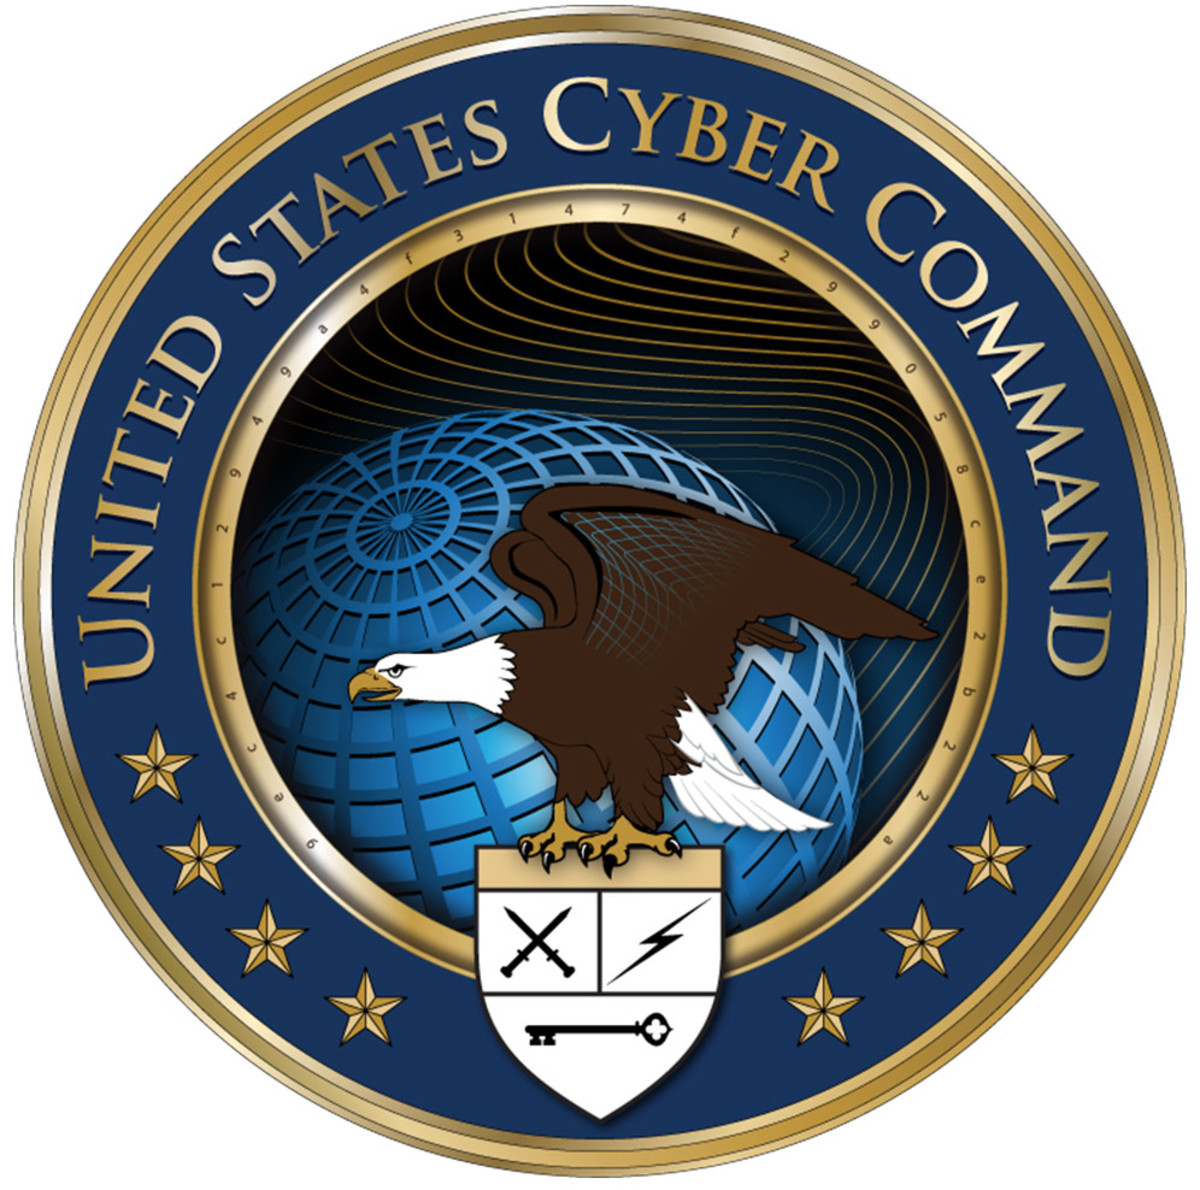 Even though the United States has a Cyber Command for Cybersecurity, they still lack a simple solution to stop threats in their tracks.